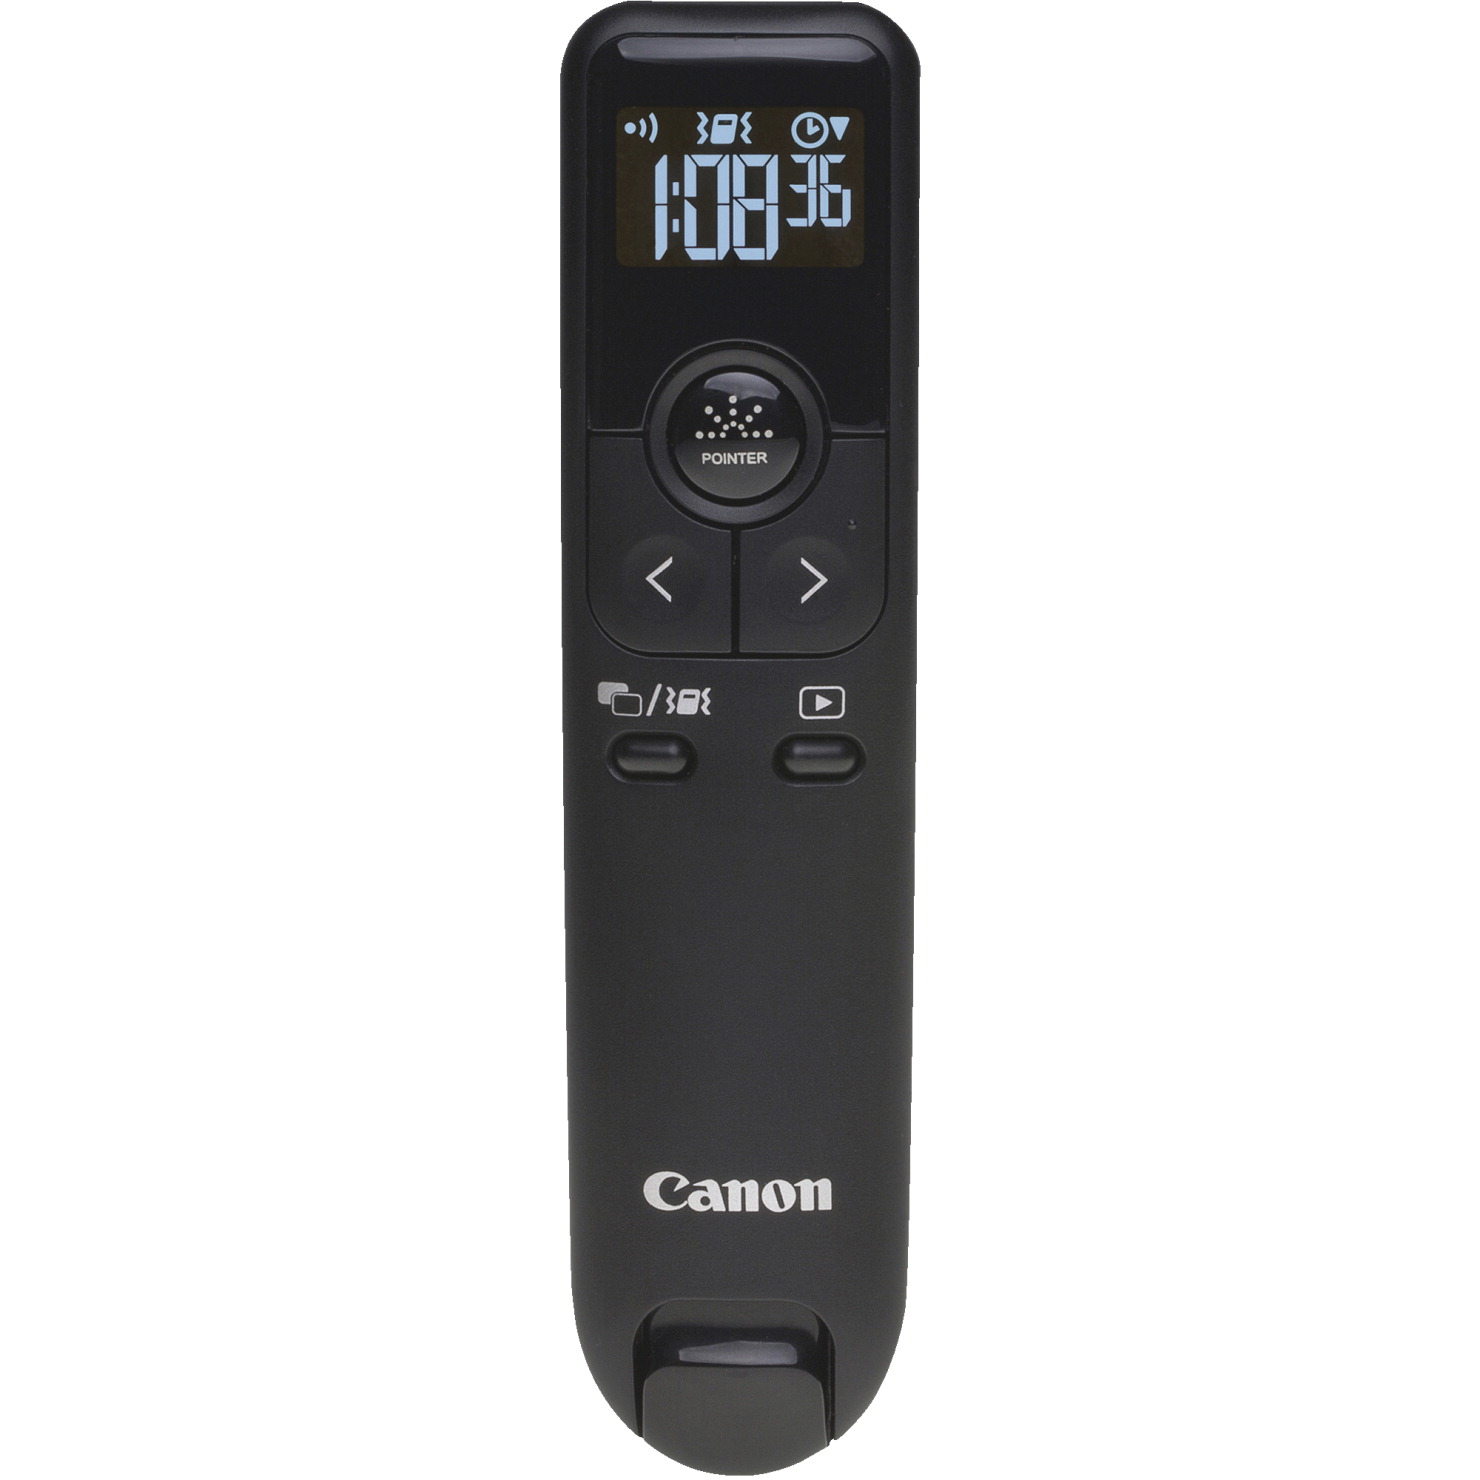 Canon Wireless Presenter, Red Laser, 6 W x 10 L x 2-3/10 Inches H, Black